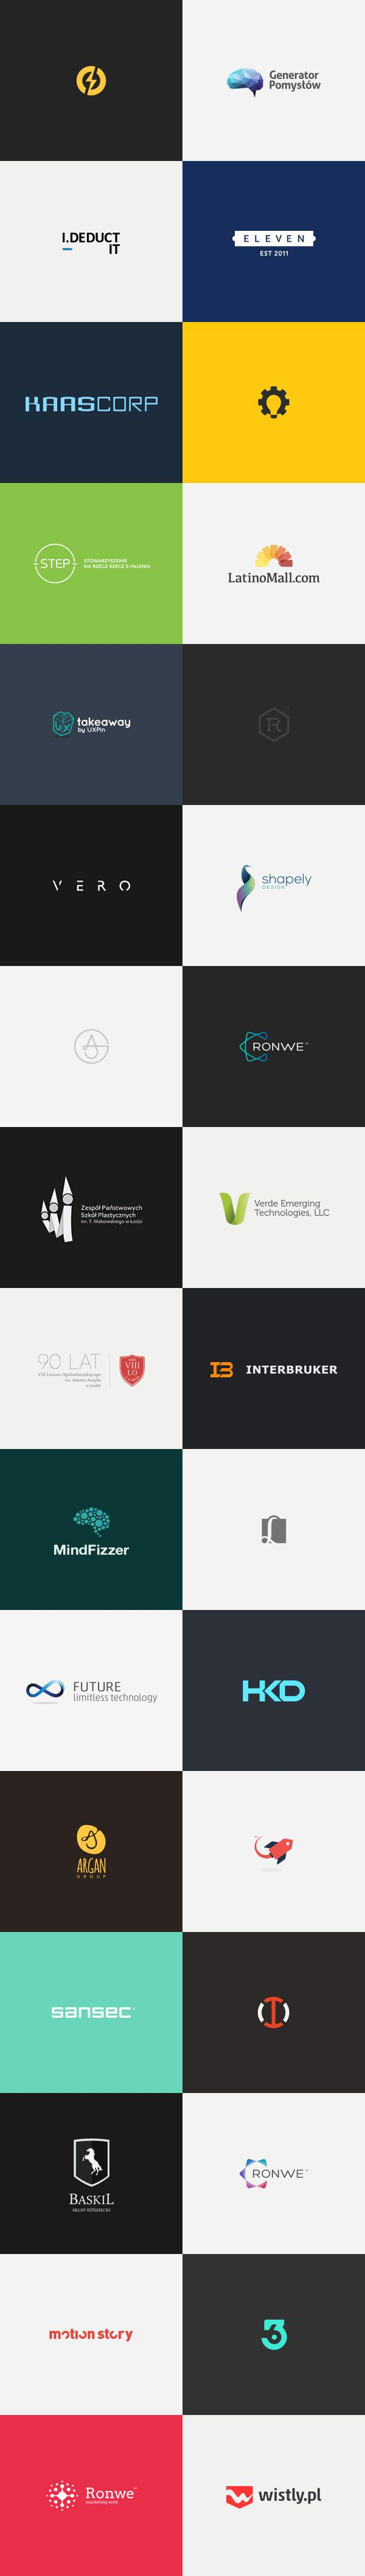 Inspiring Brand Marks. Dominik Pacholczyk is a Lodz, Poland based graphic designer and art director specializing in logo design, development of complete br